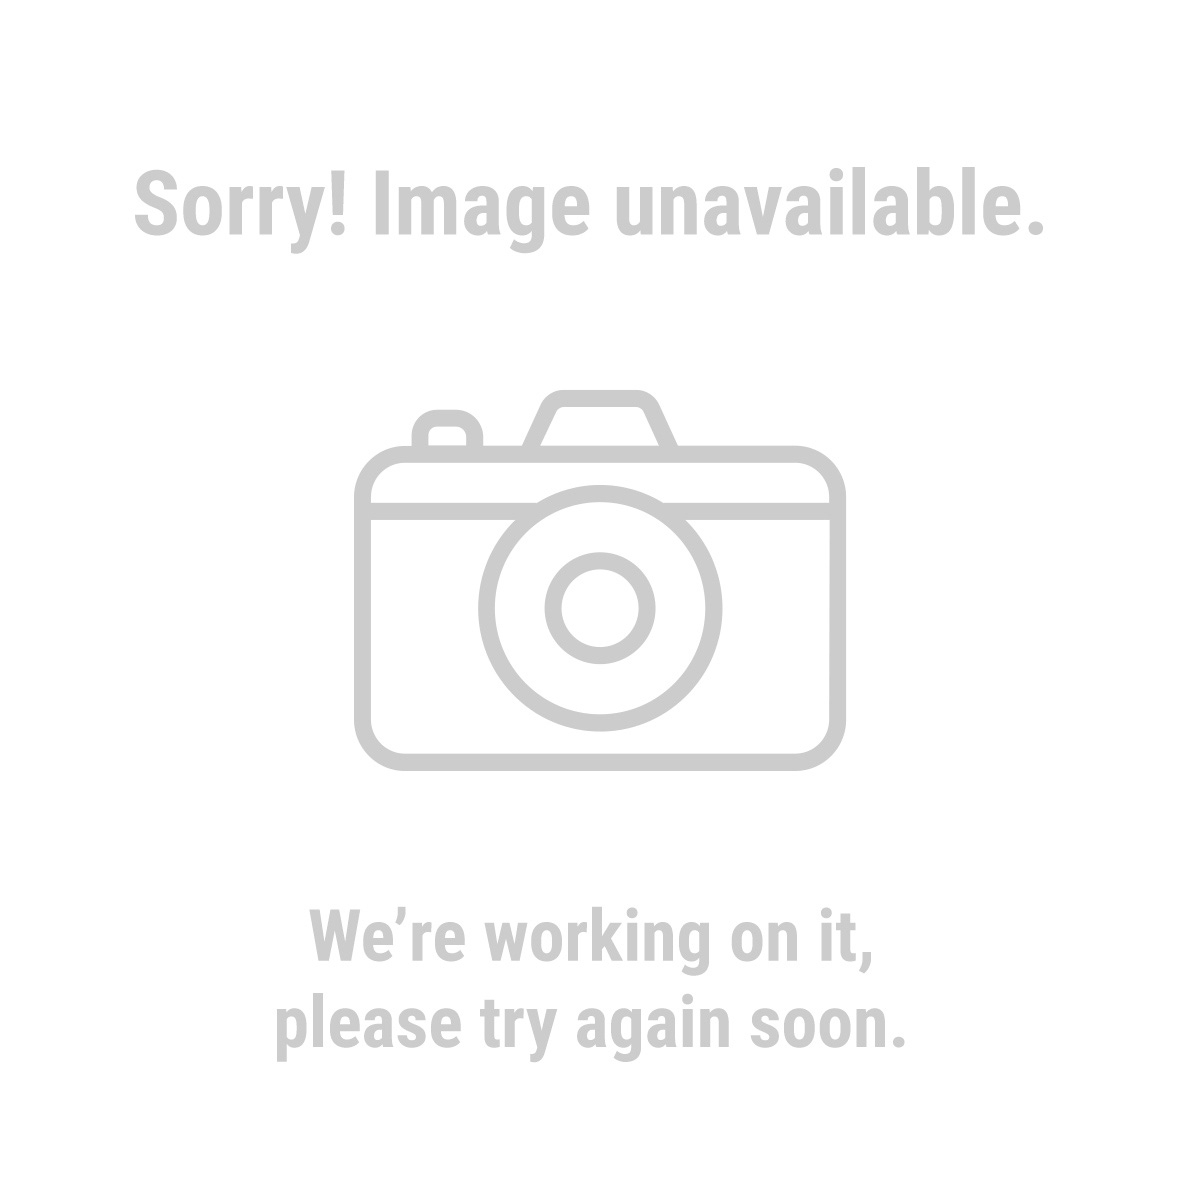 Warrior 62657 100 Pc Security Bit Set with Case